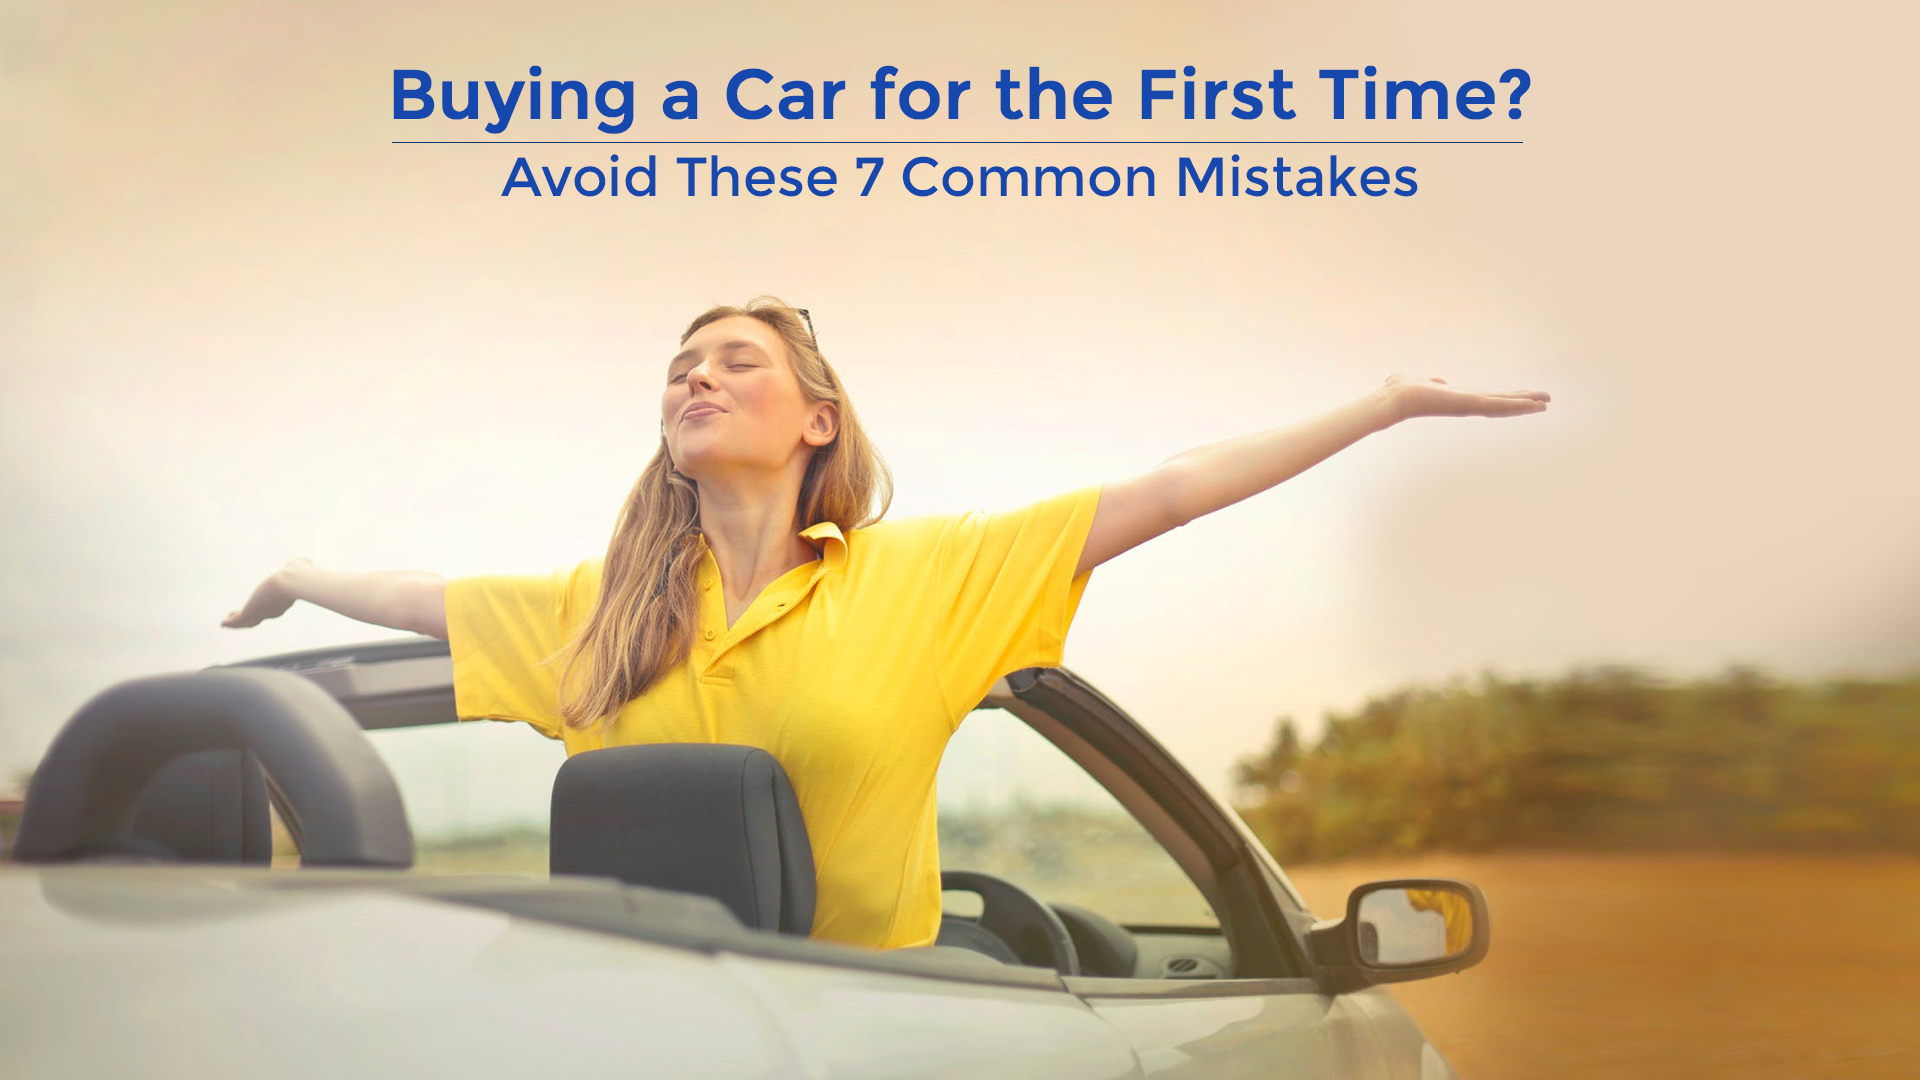 Buying a Car for the First Time? Avoid These 7 Common Mistakes